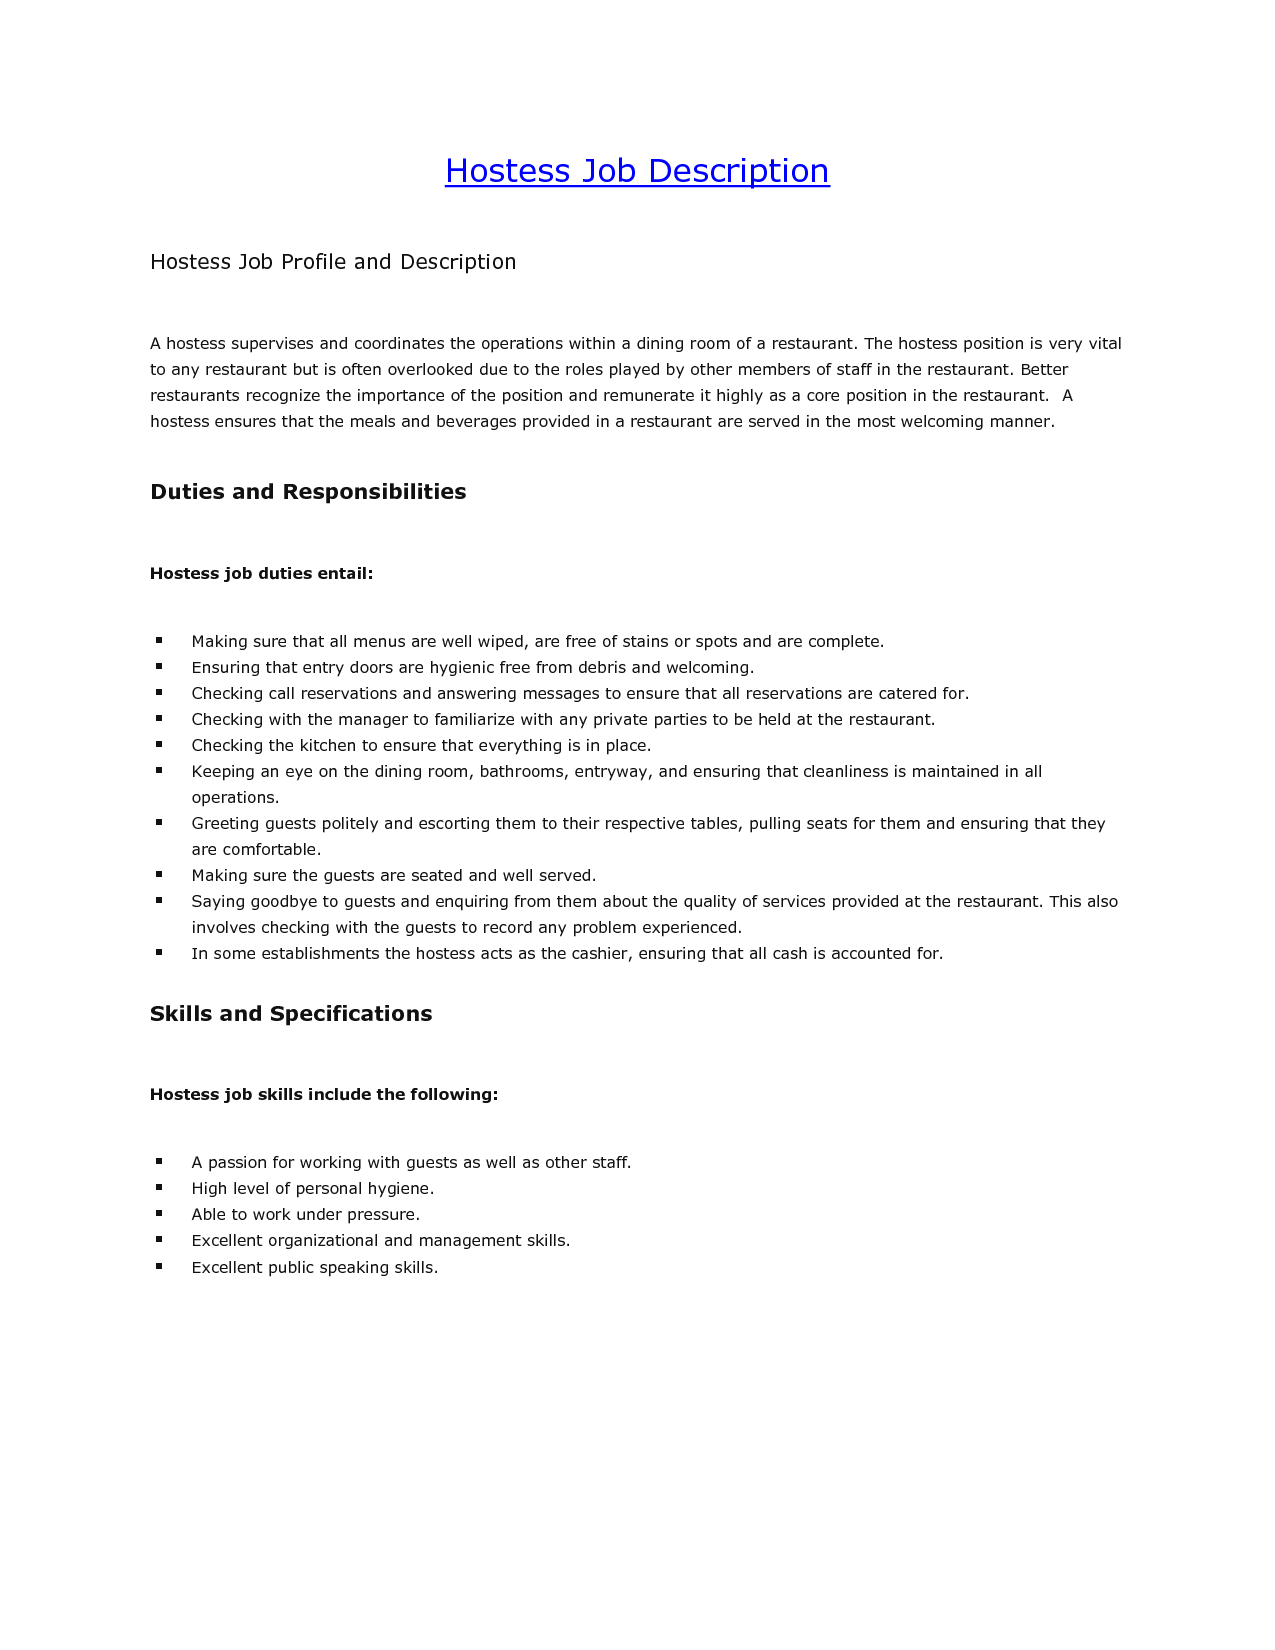 responsibilities of a hostess for resume